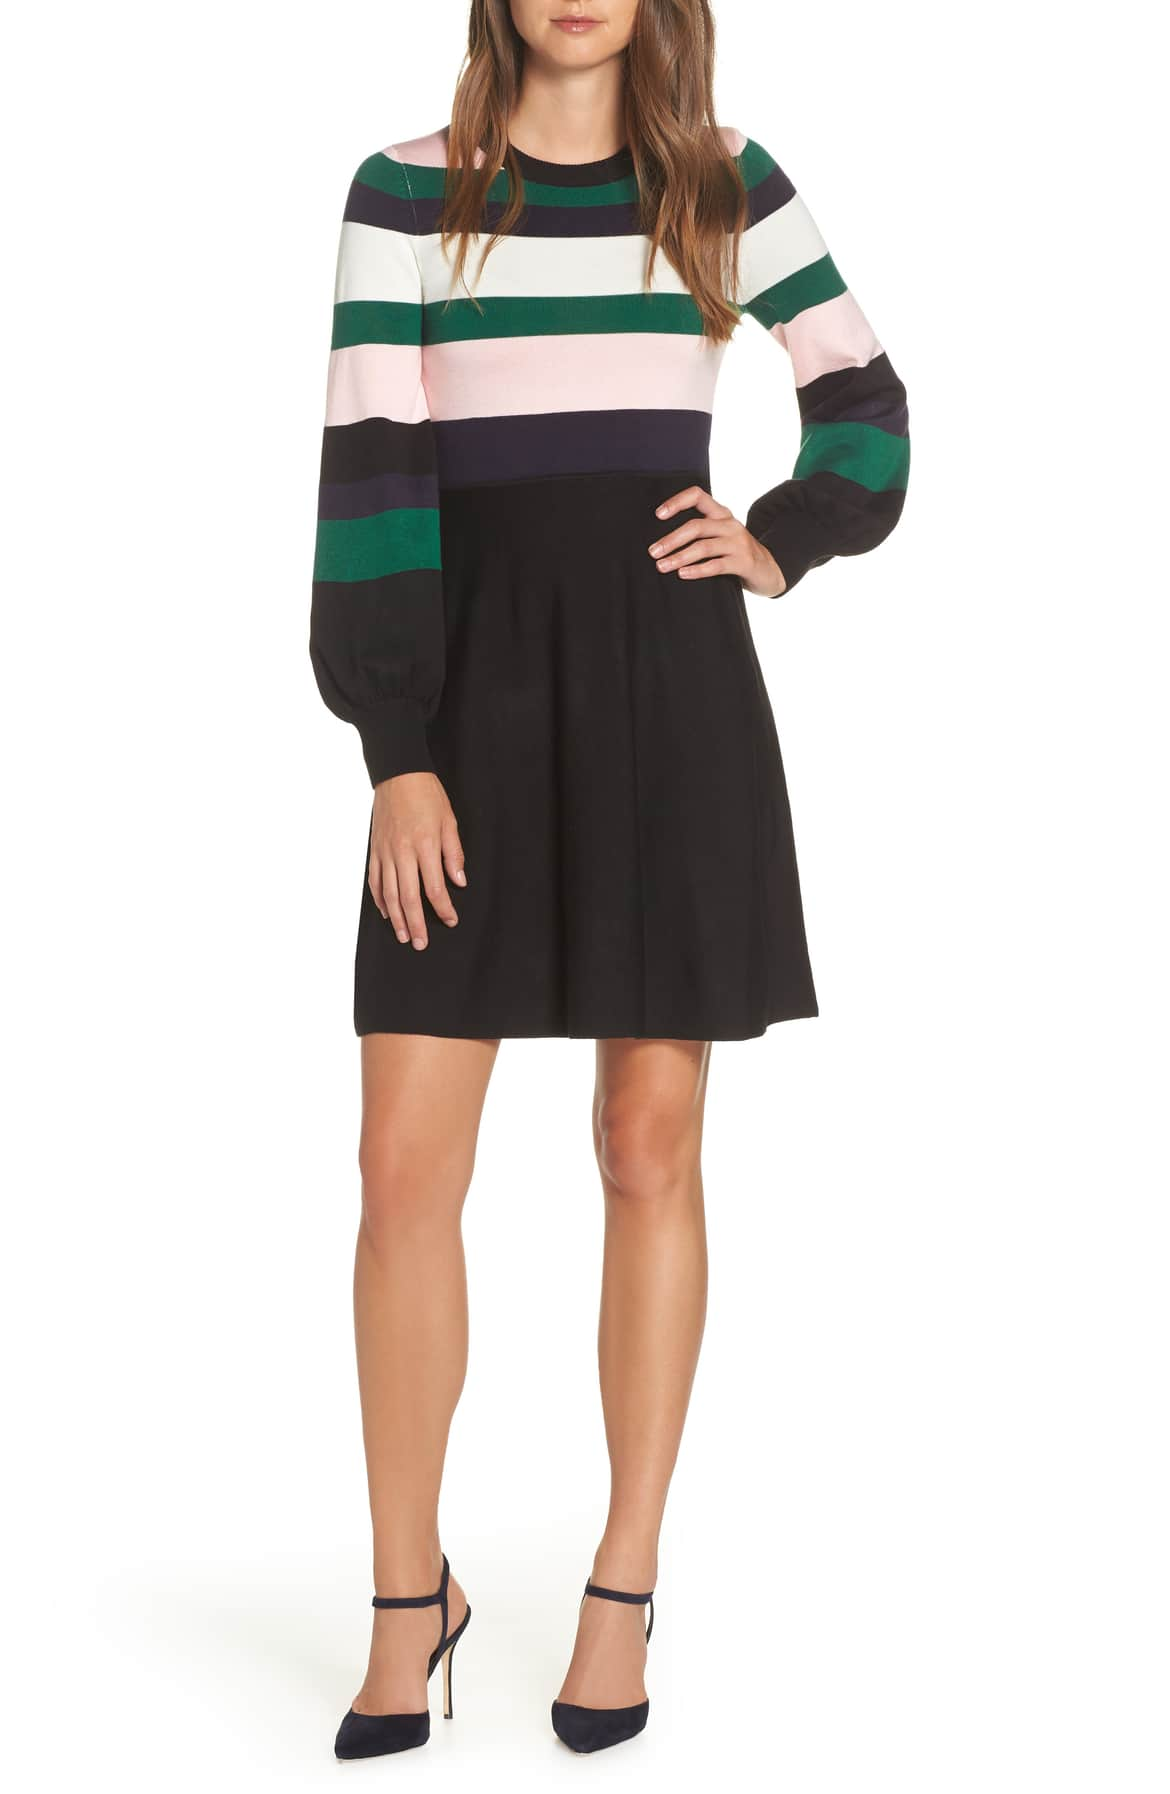 sweater dress vince camuto sale nordstrom